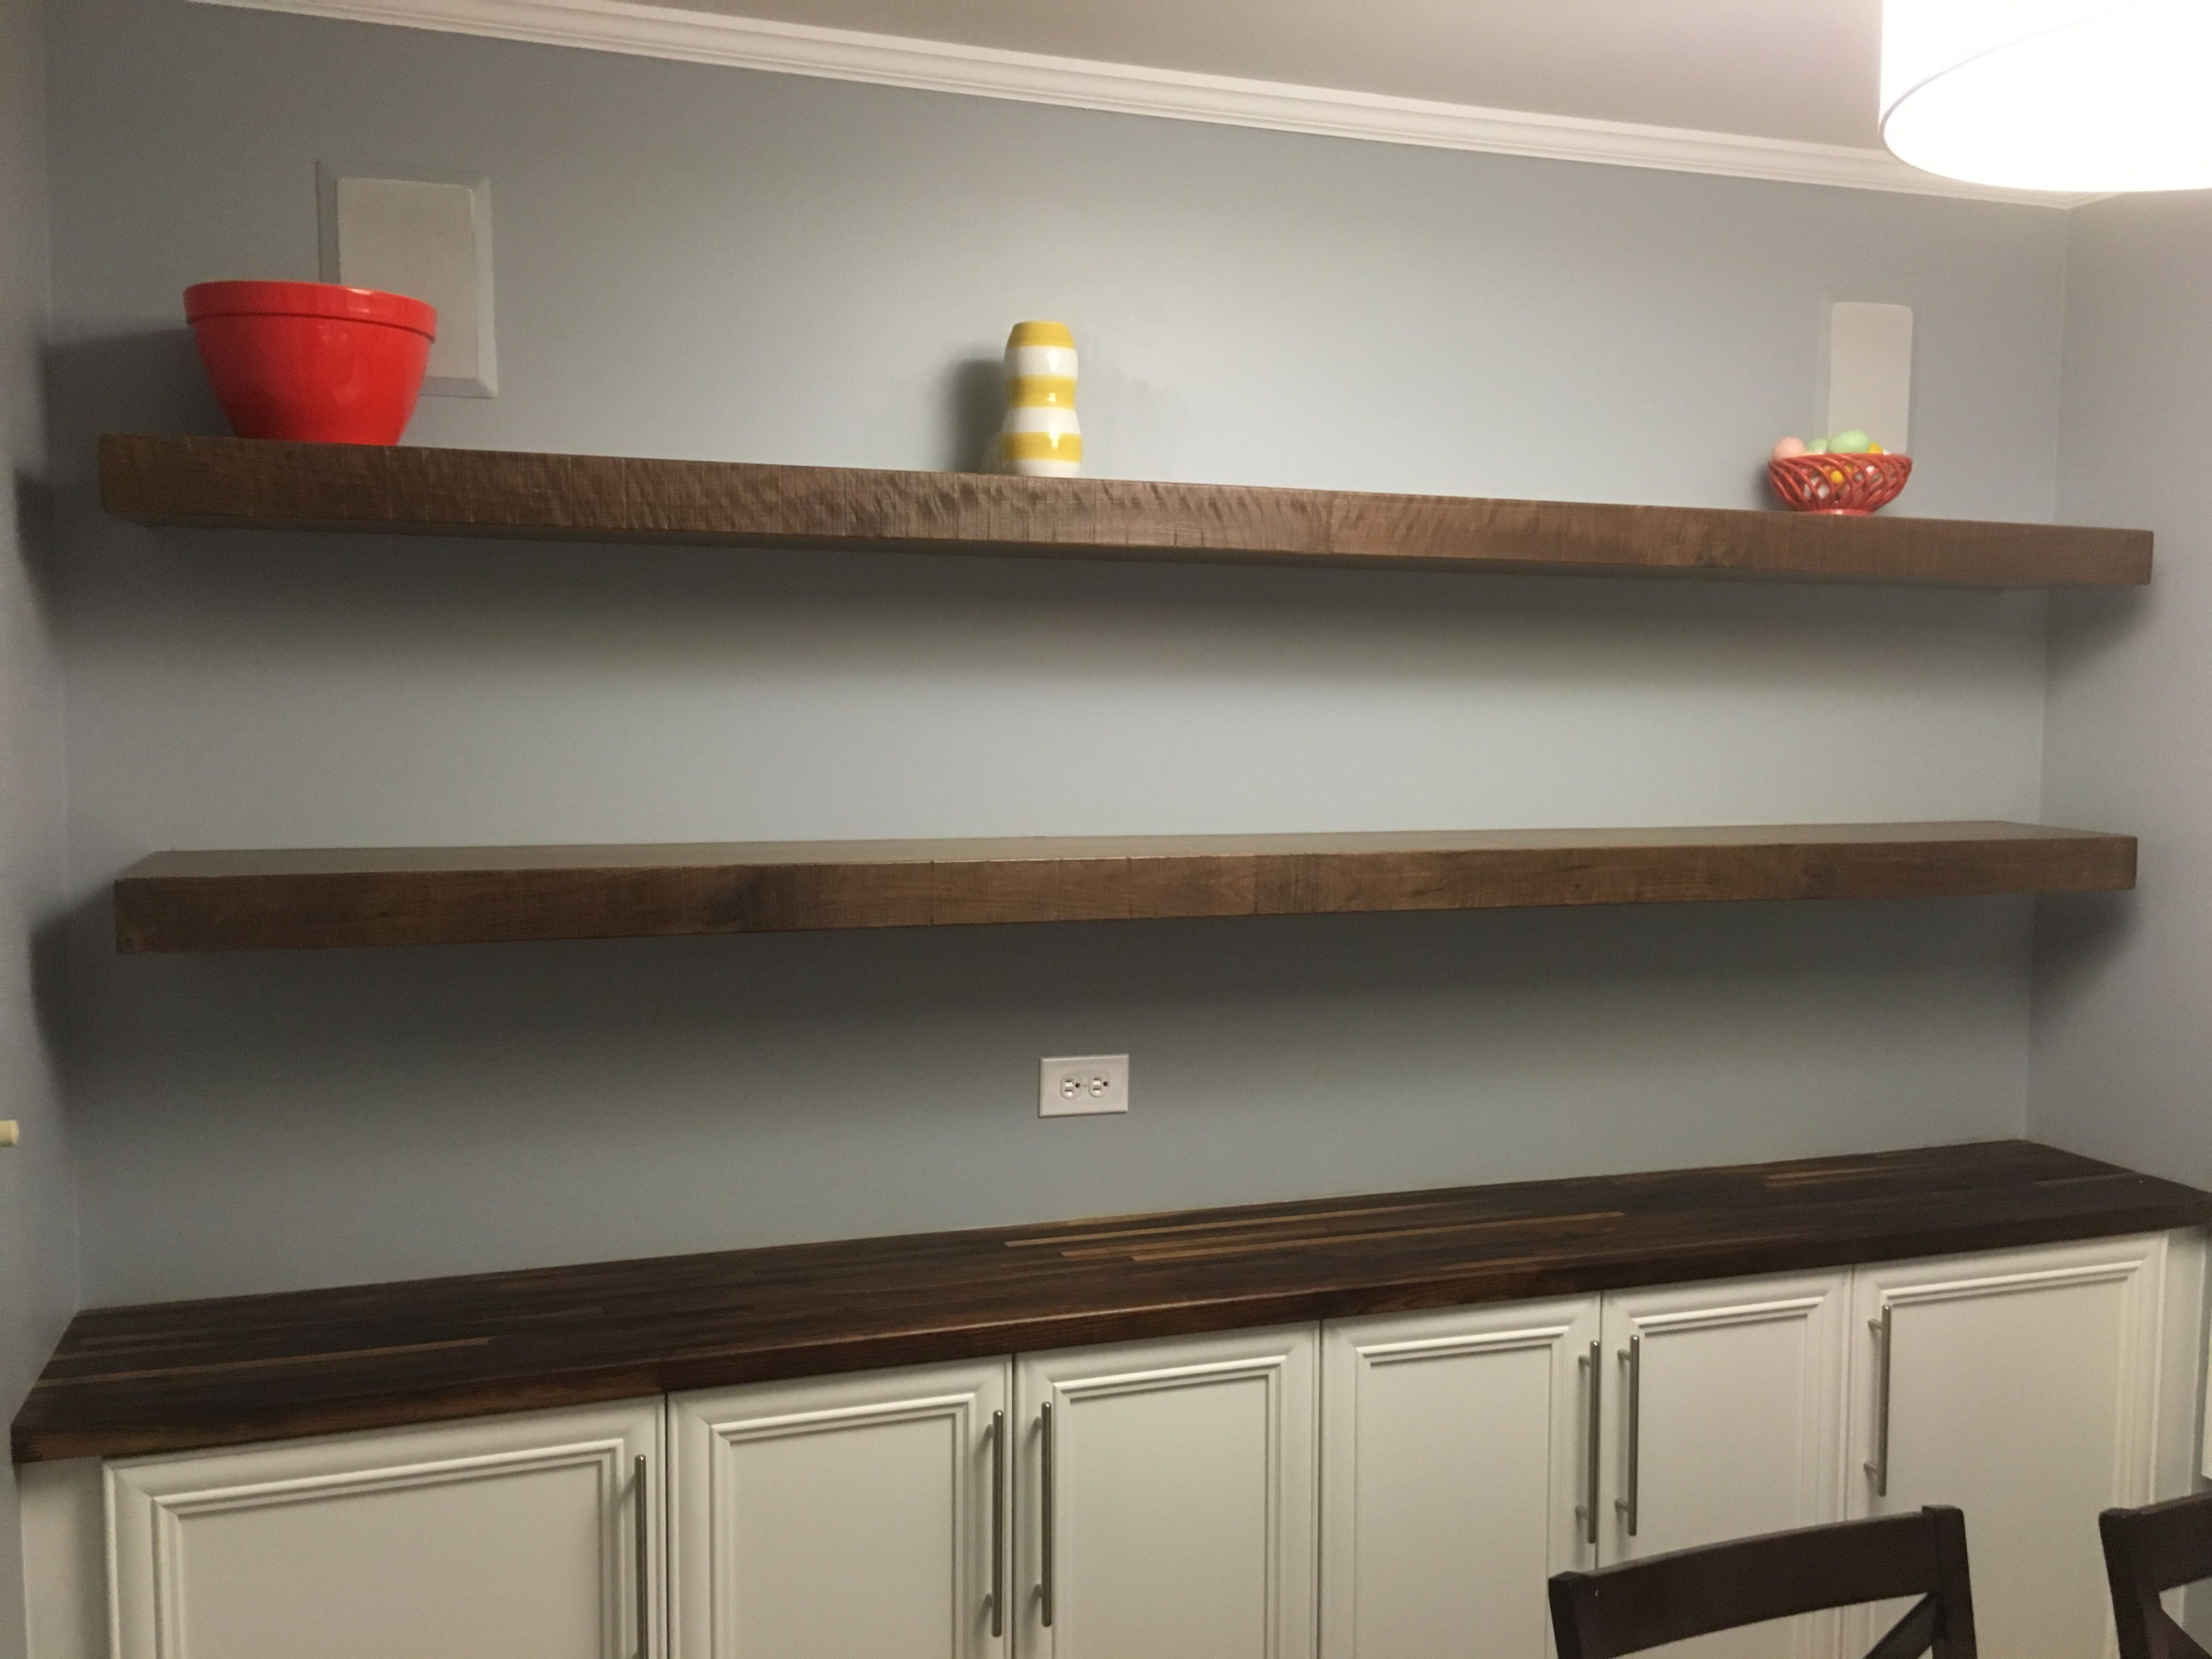 Farmhouse Bookshelf Decor Built Ins